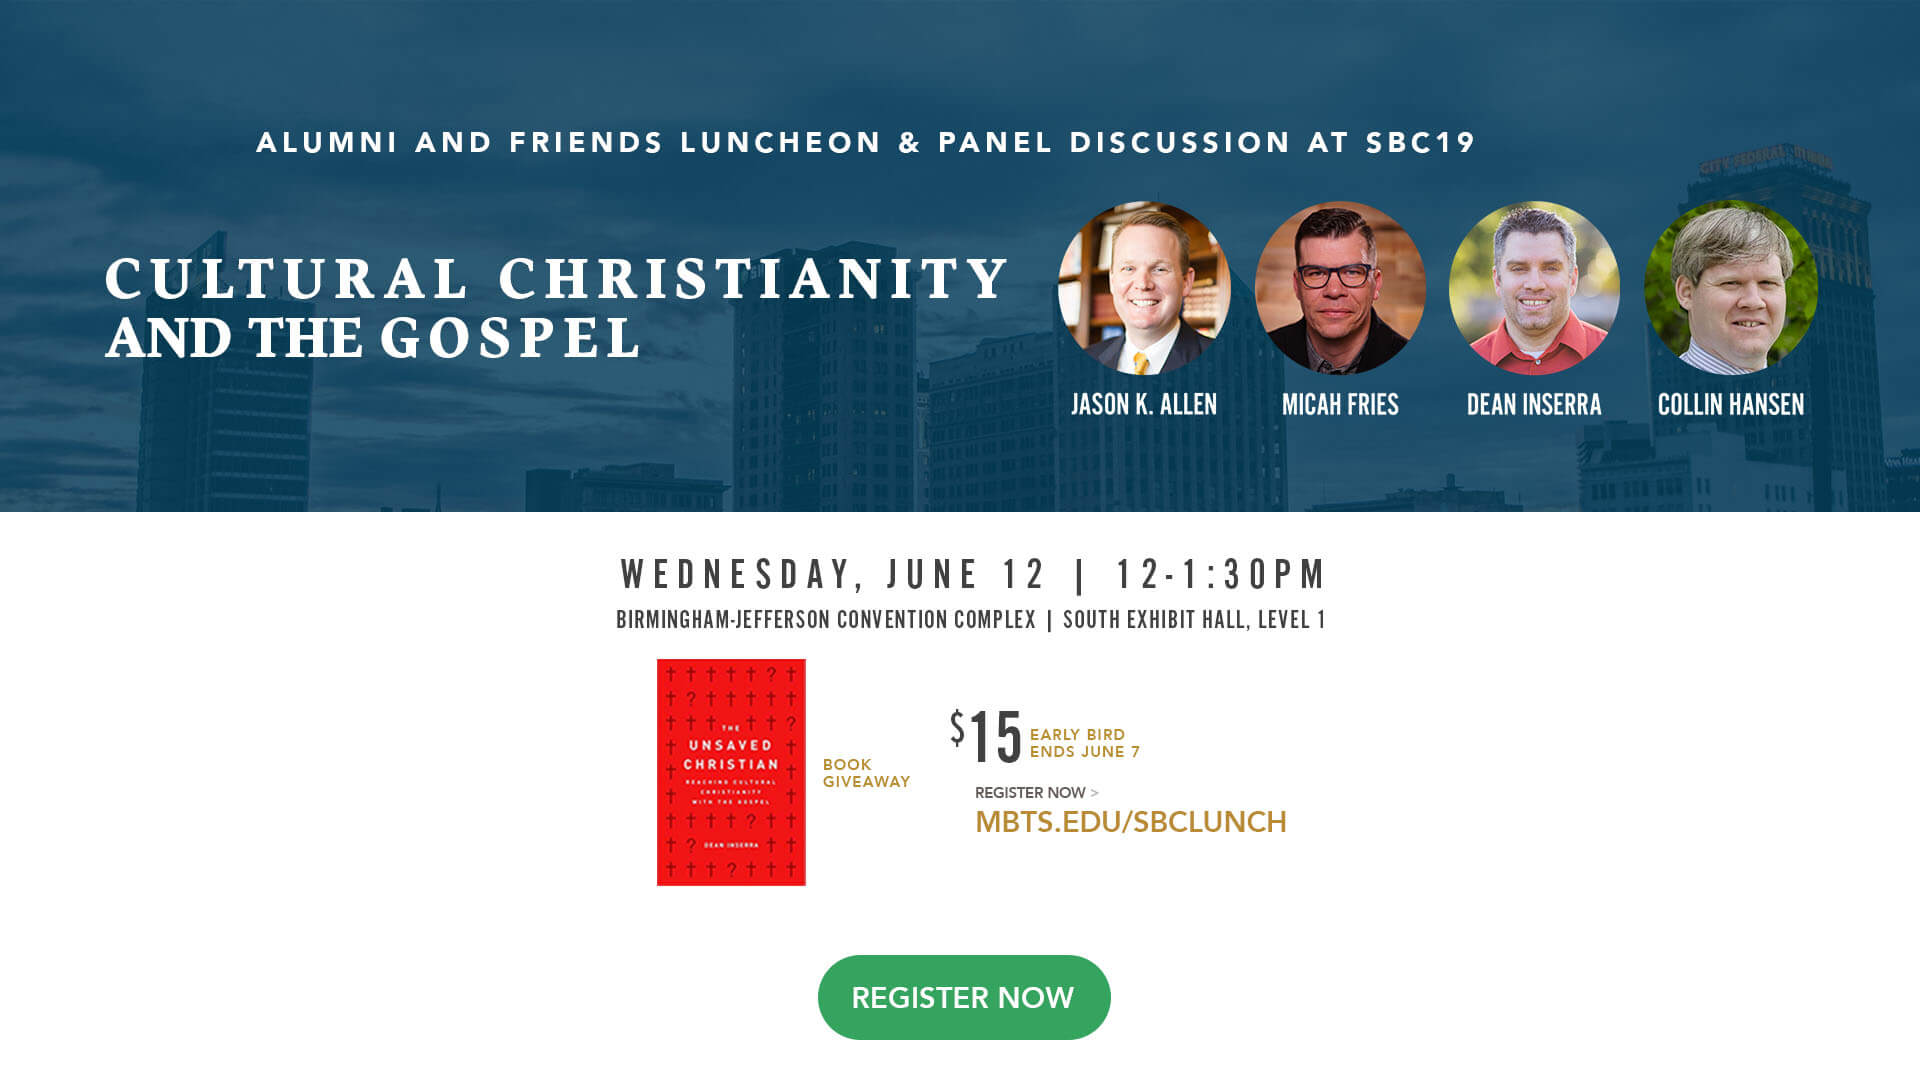 2019 Alumni and Friend Luncheon at SBC, June 12